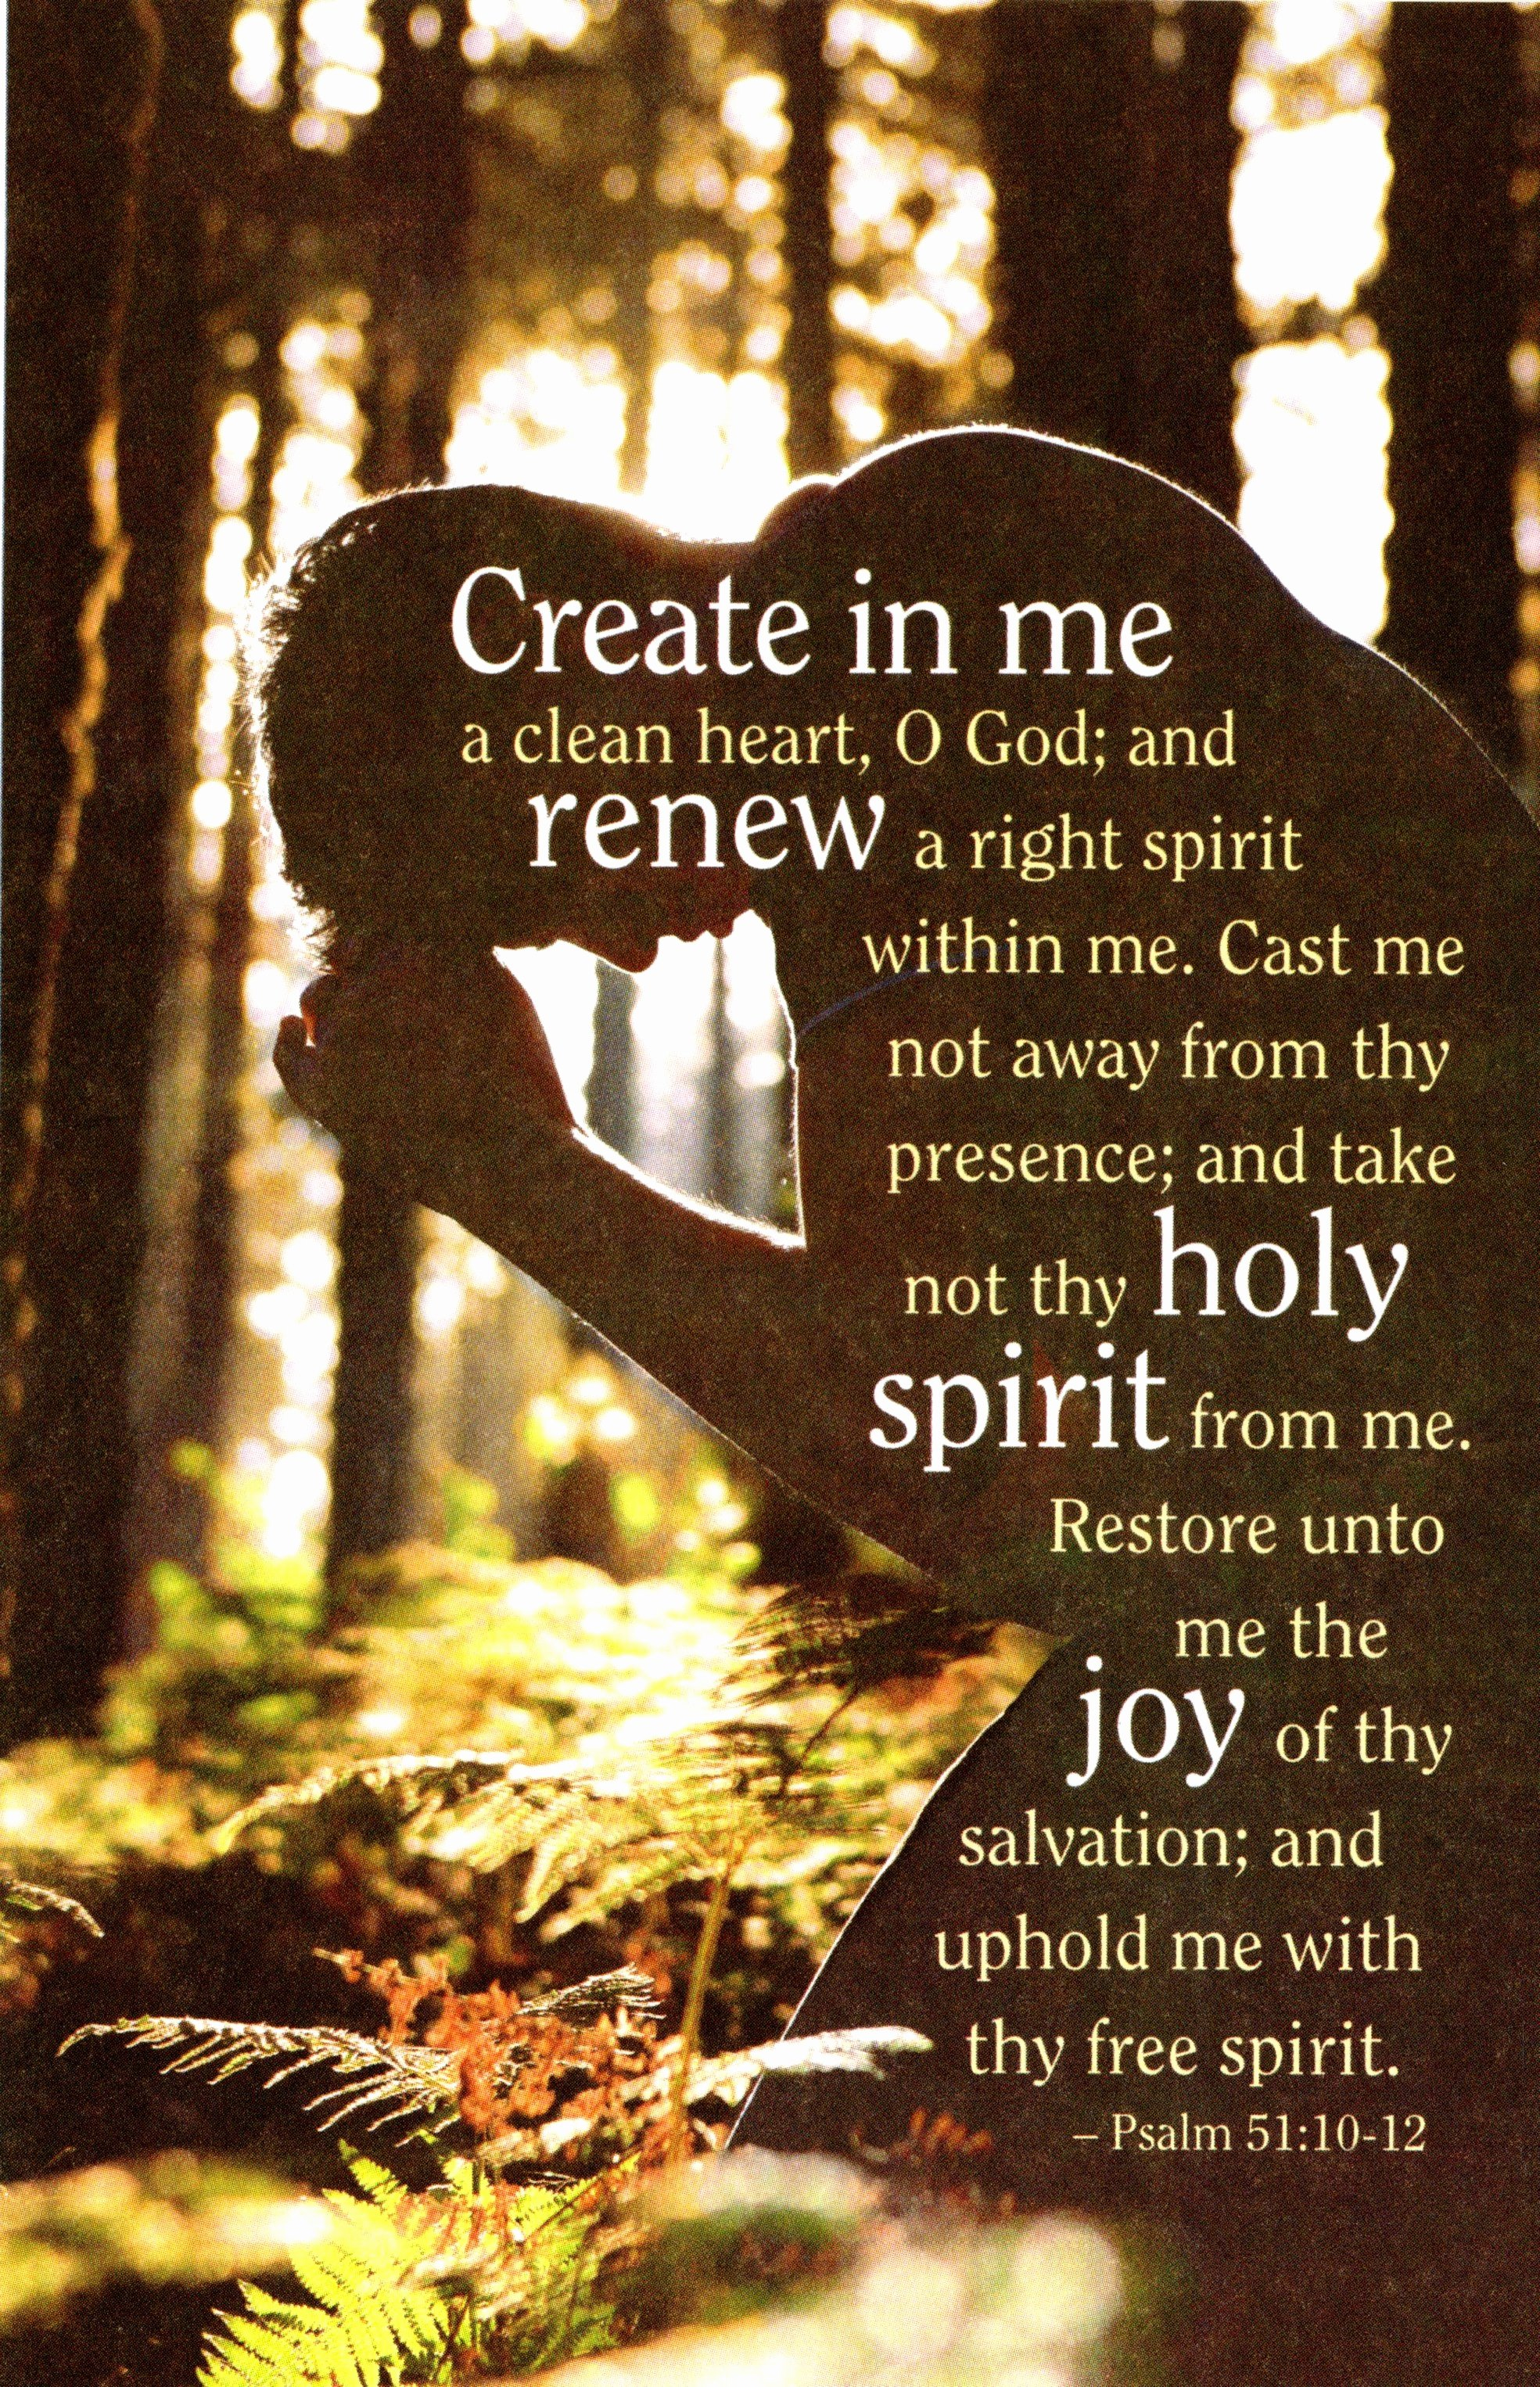 Free Printable Church Bulletin Covers Awesome Sunday Worship Service 9 27 15